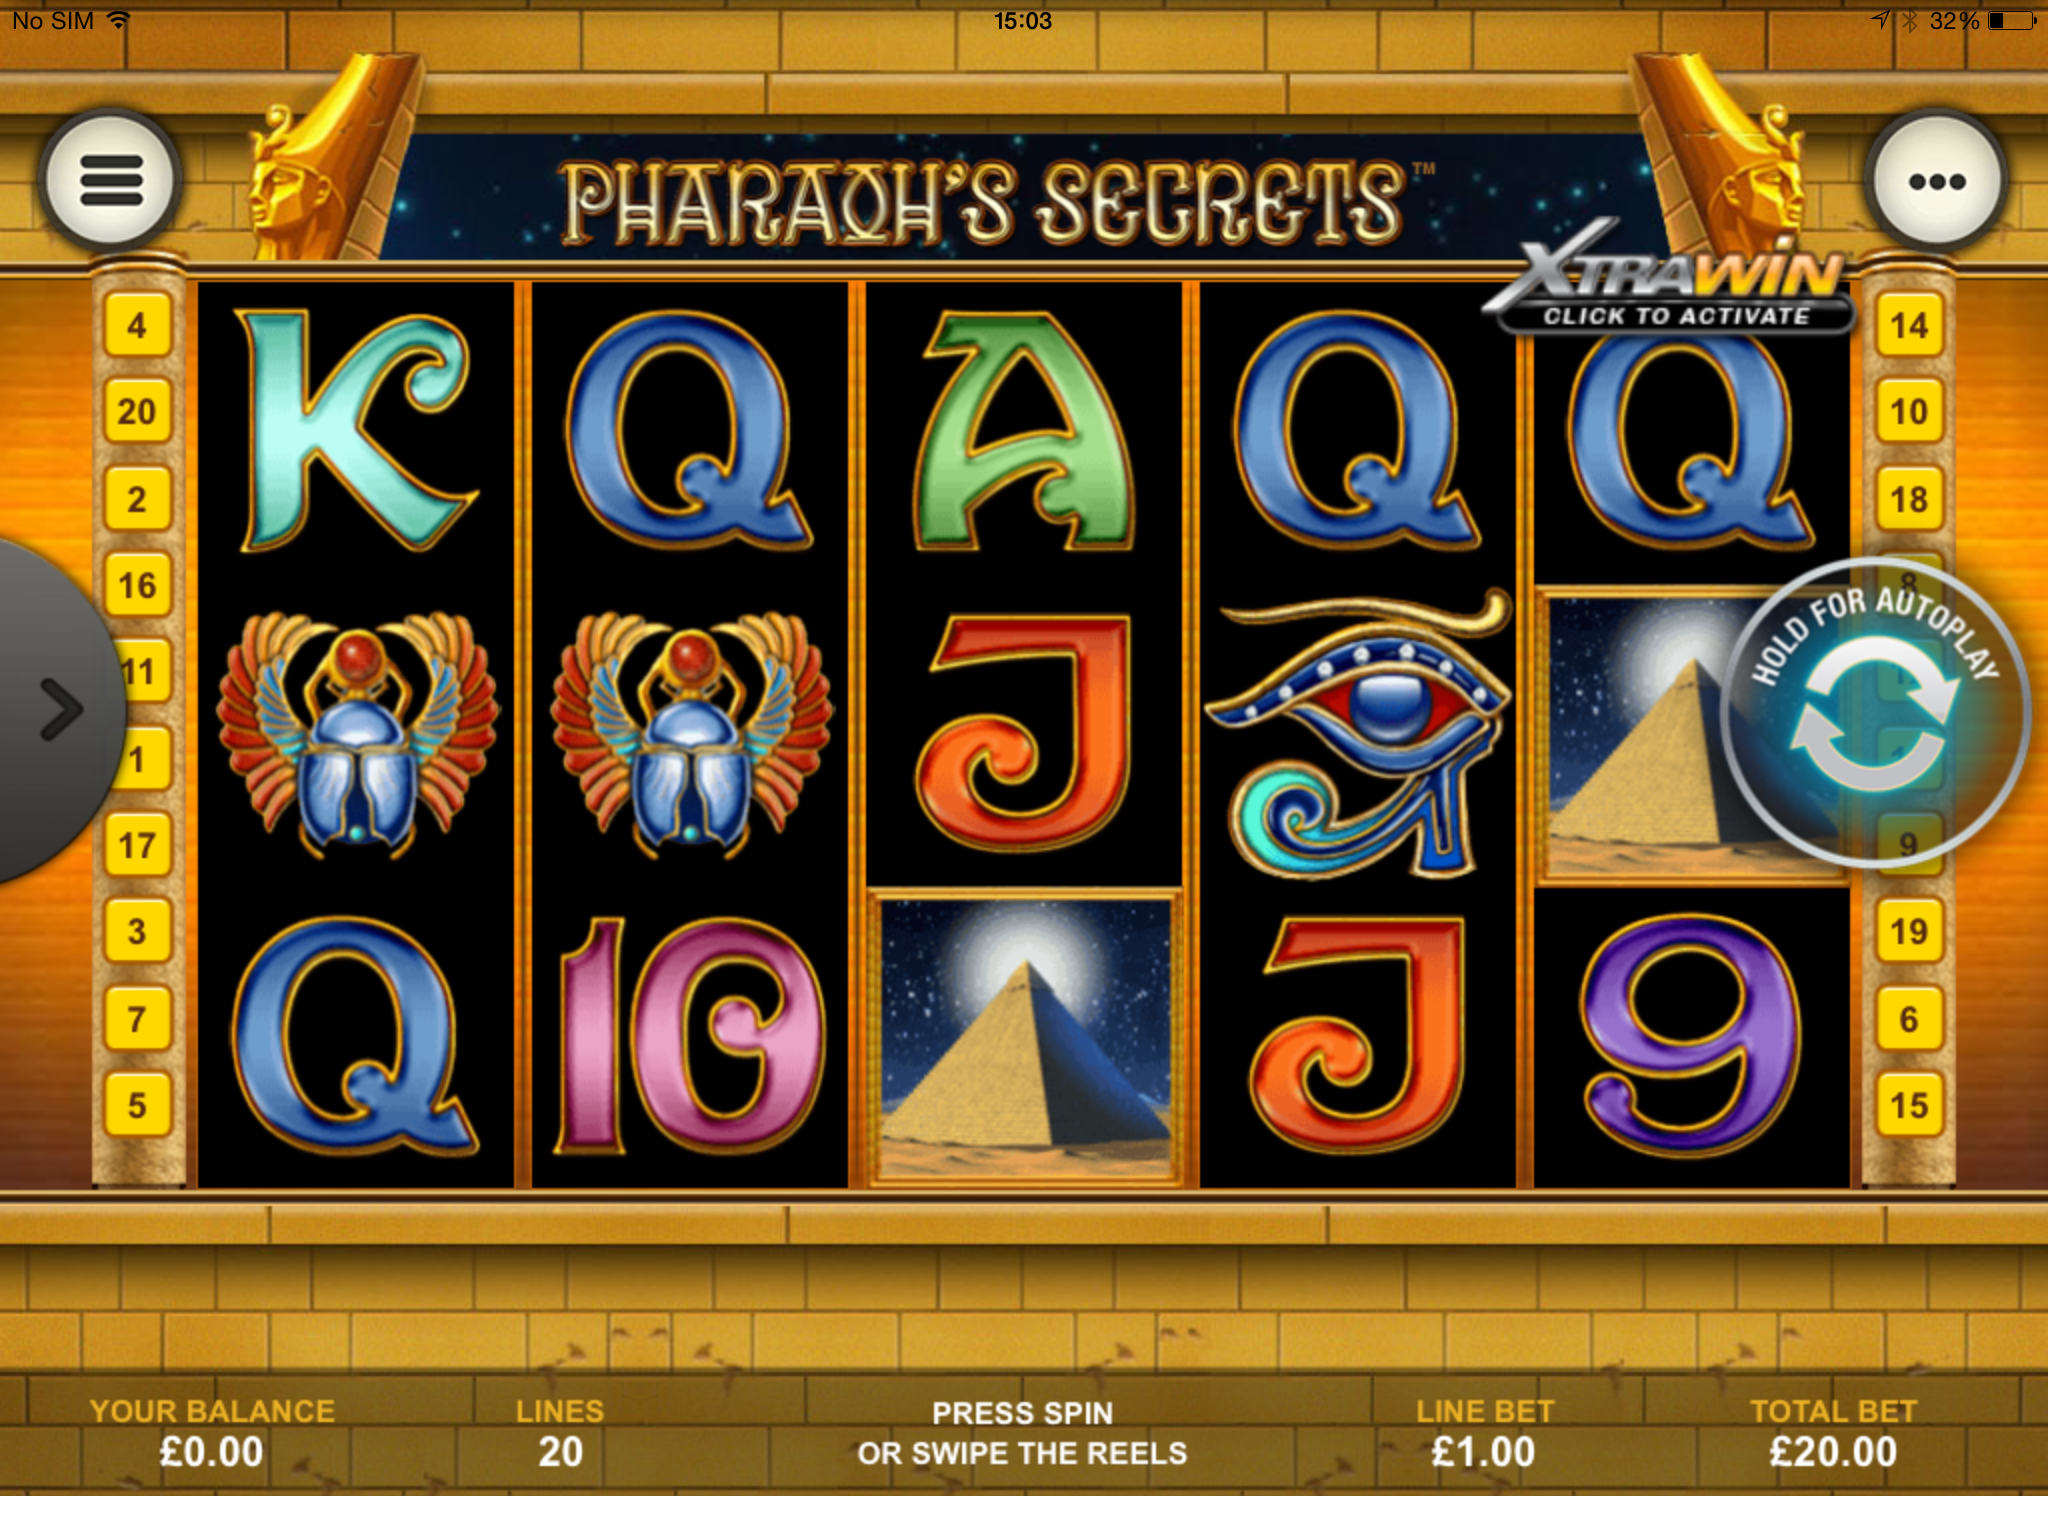 pharaohs secrets screenshot